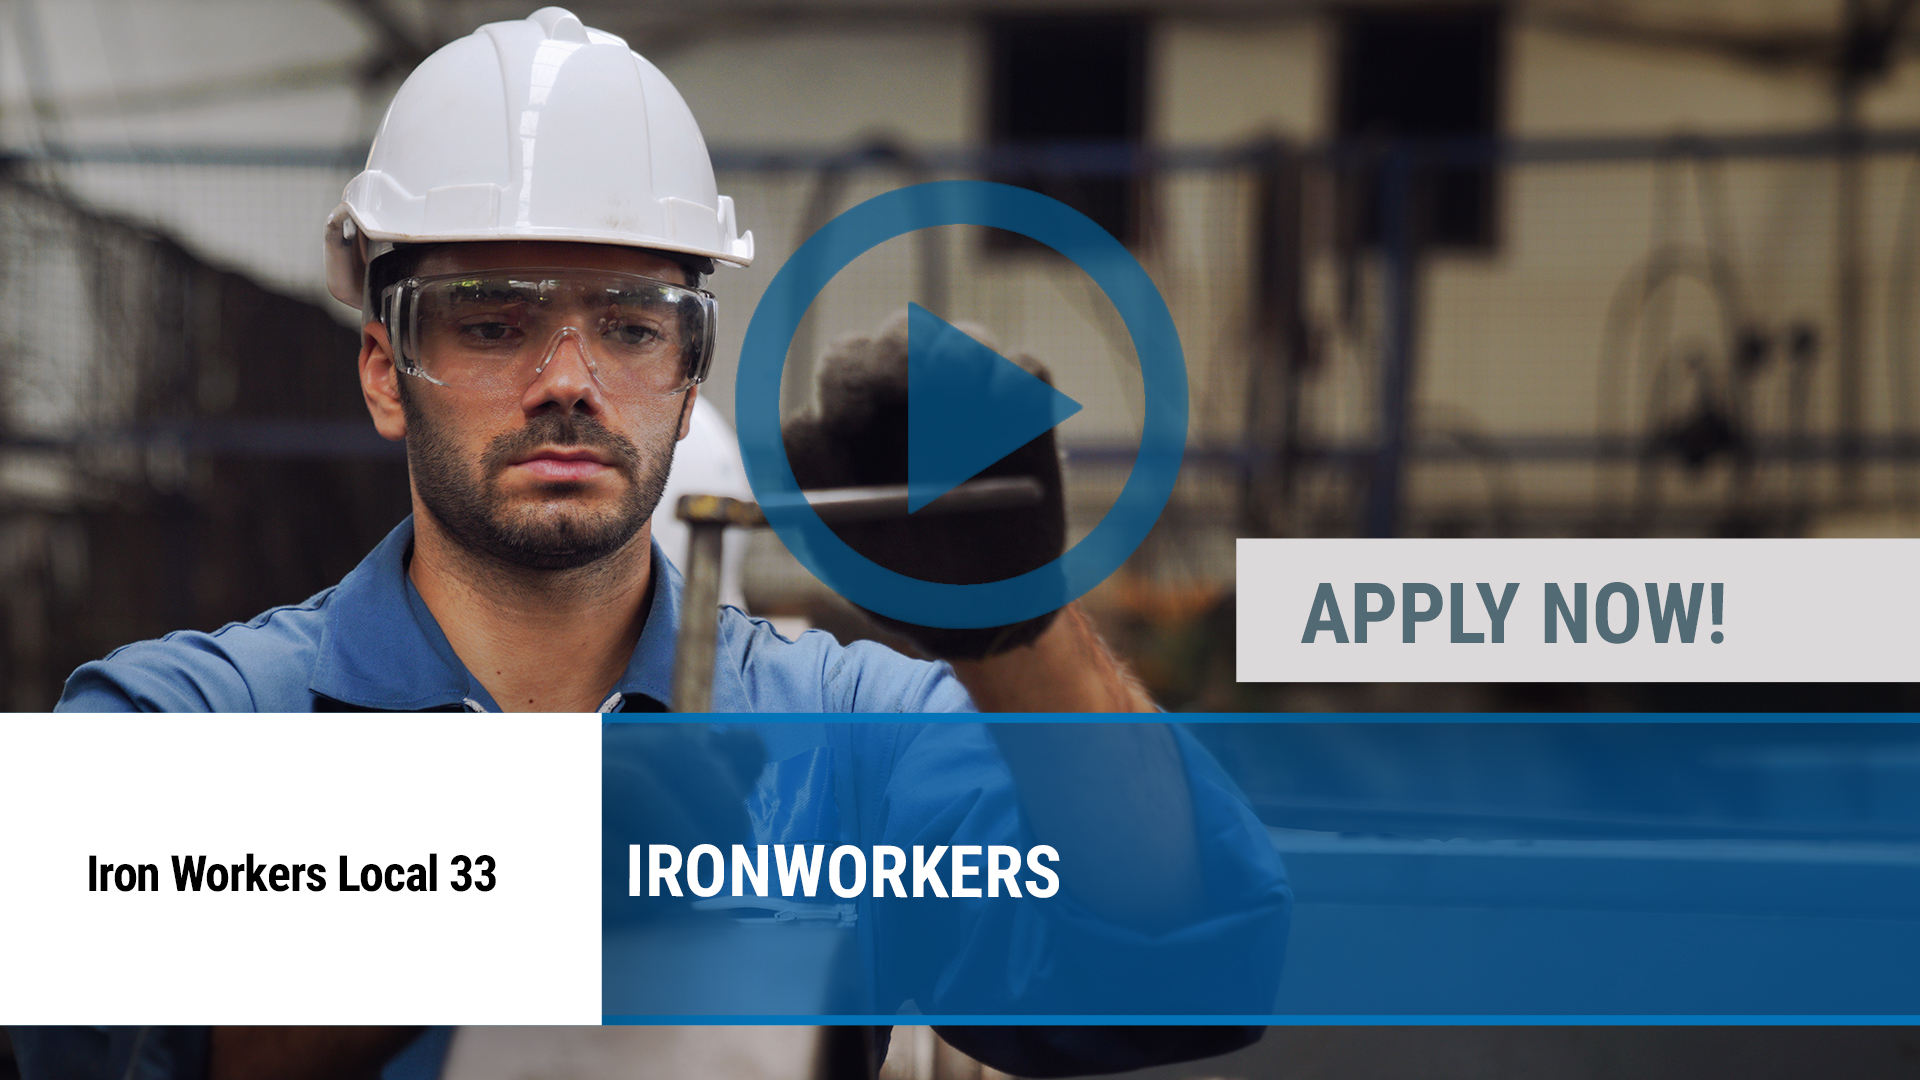 Watch our careers video for available job opening Ironworkers in Rochester, NY